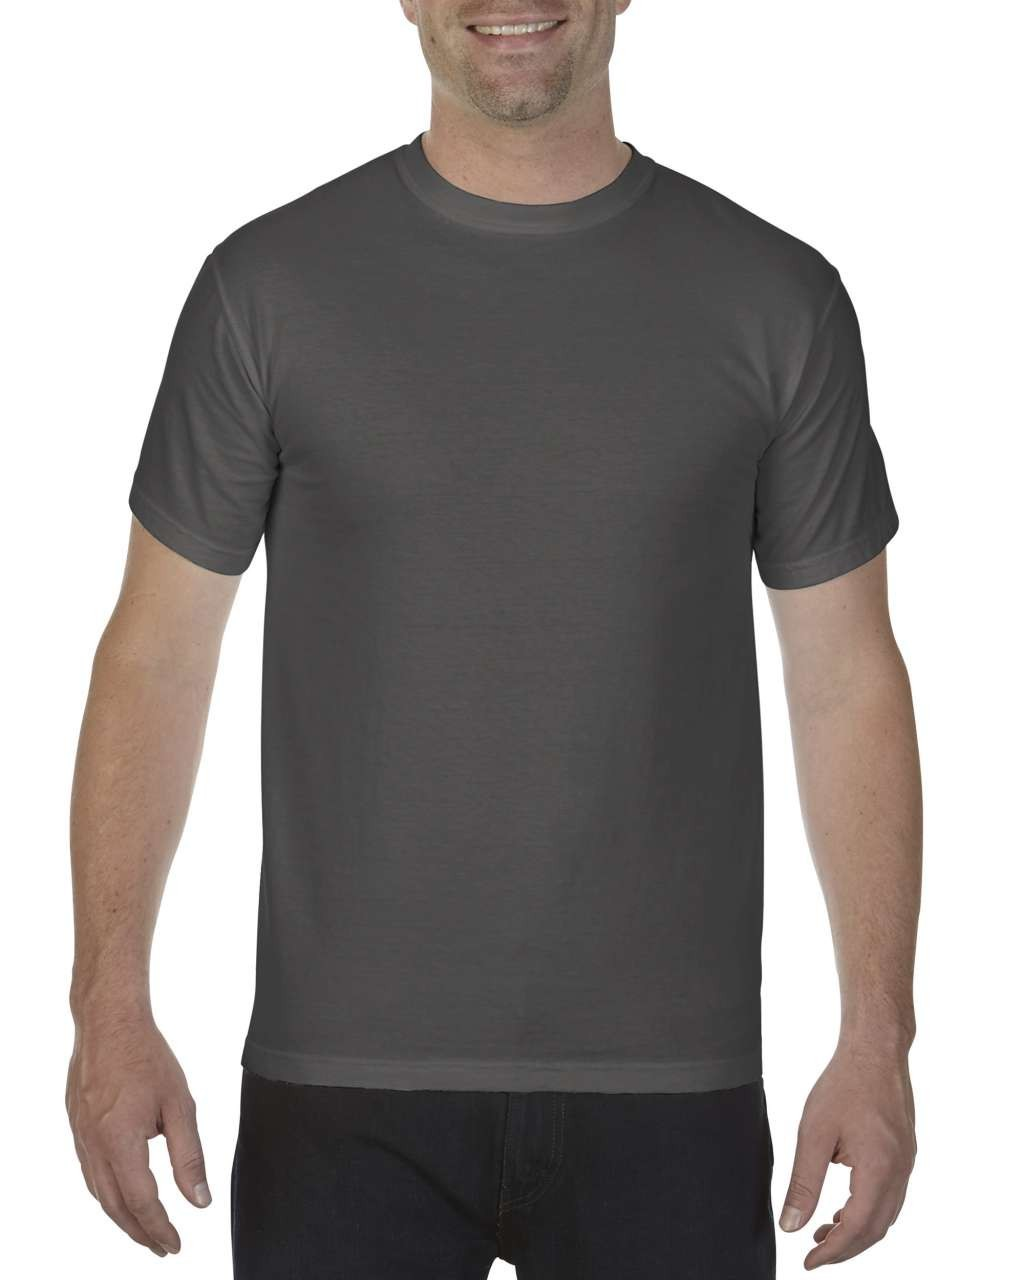 comfort tshirt comforter shirt shirts sanibel colors adventures paradise to product color in t outfitters adventure